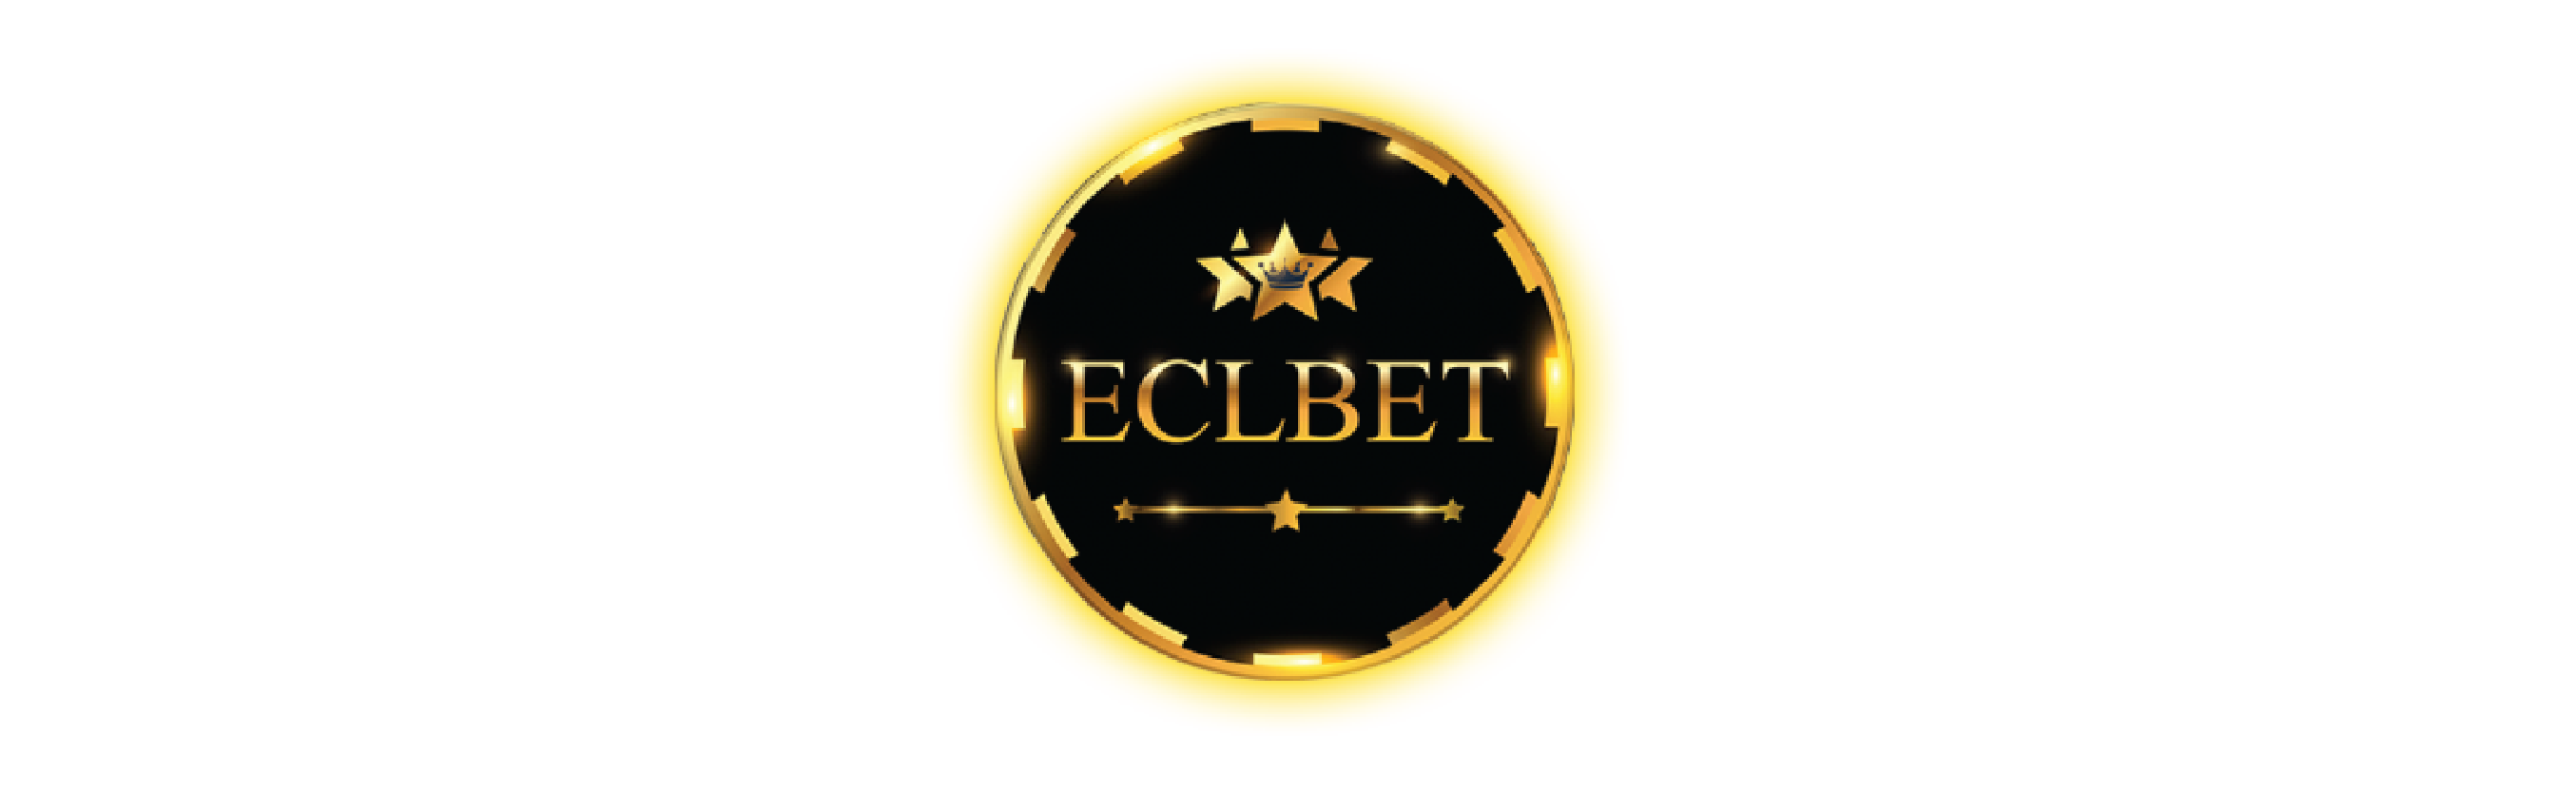 eclbet review